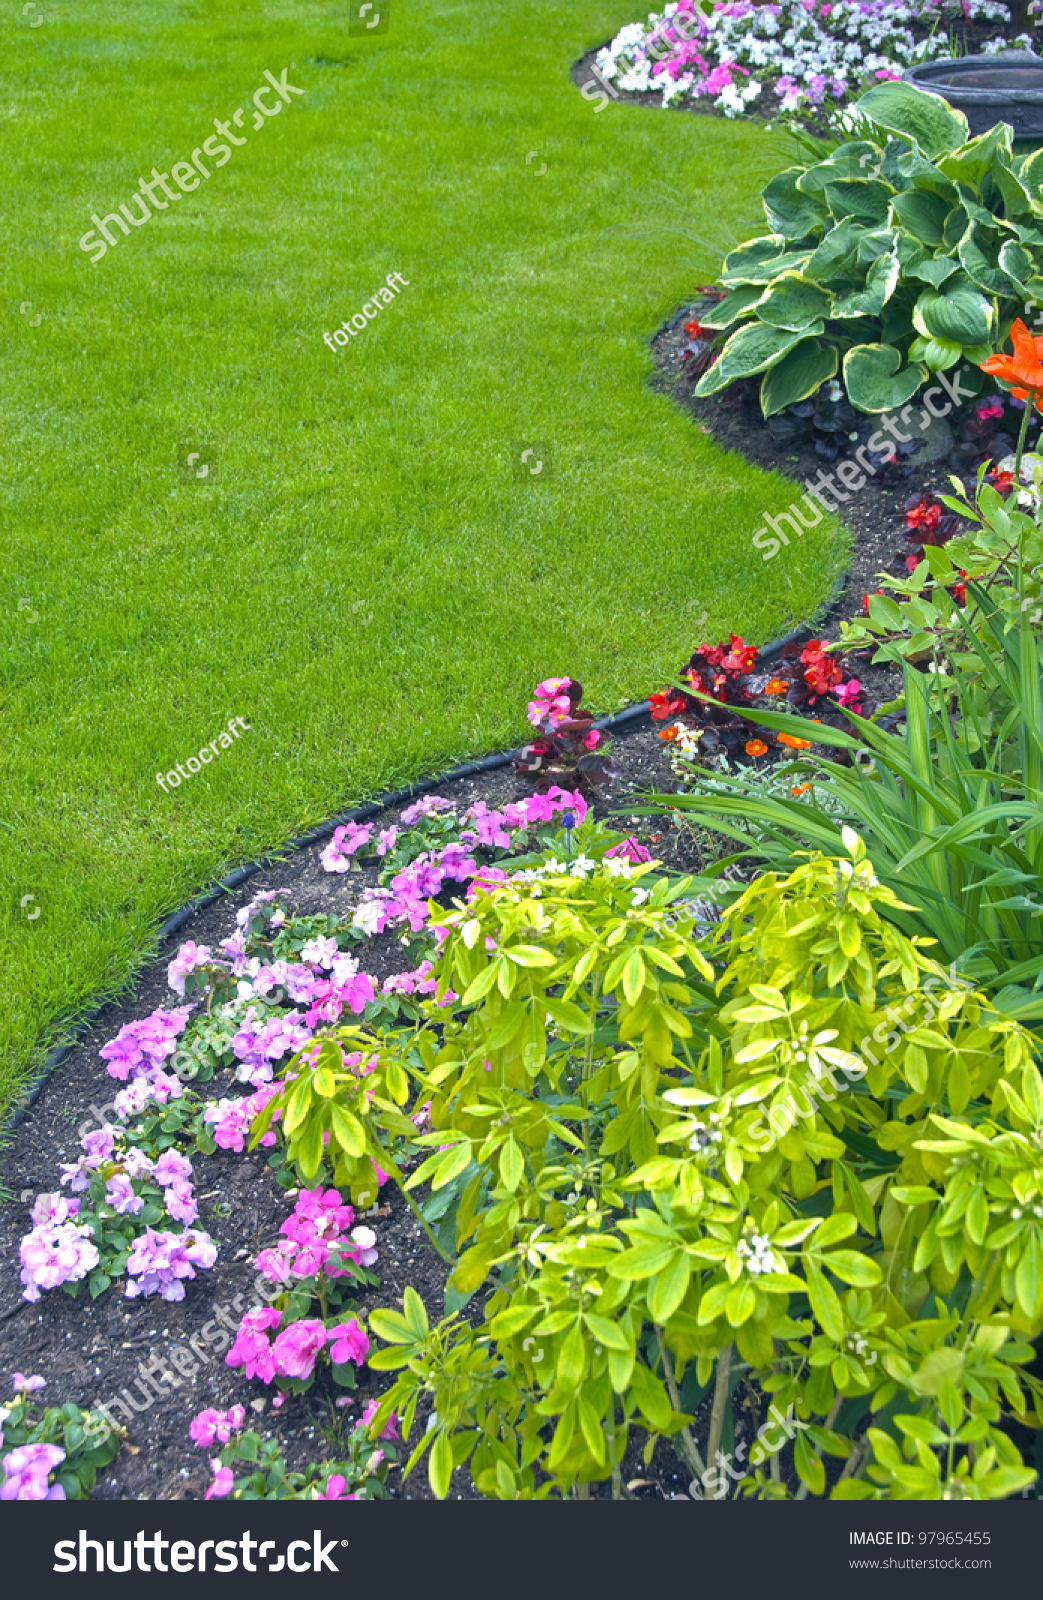 Landscaped Yard Garden Beautiful Landscaped Yard Stock Photo